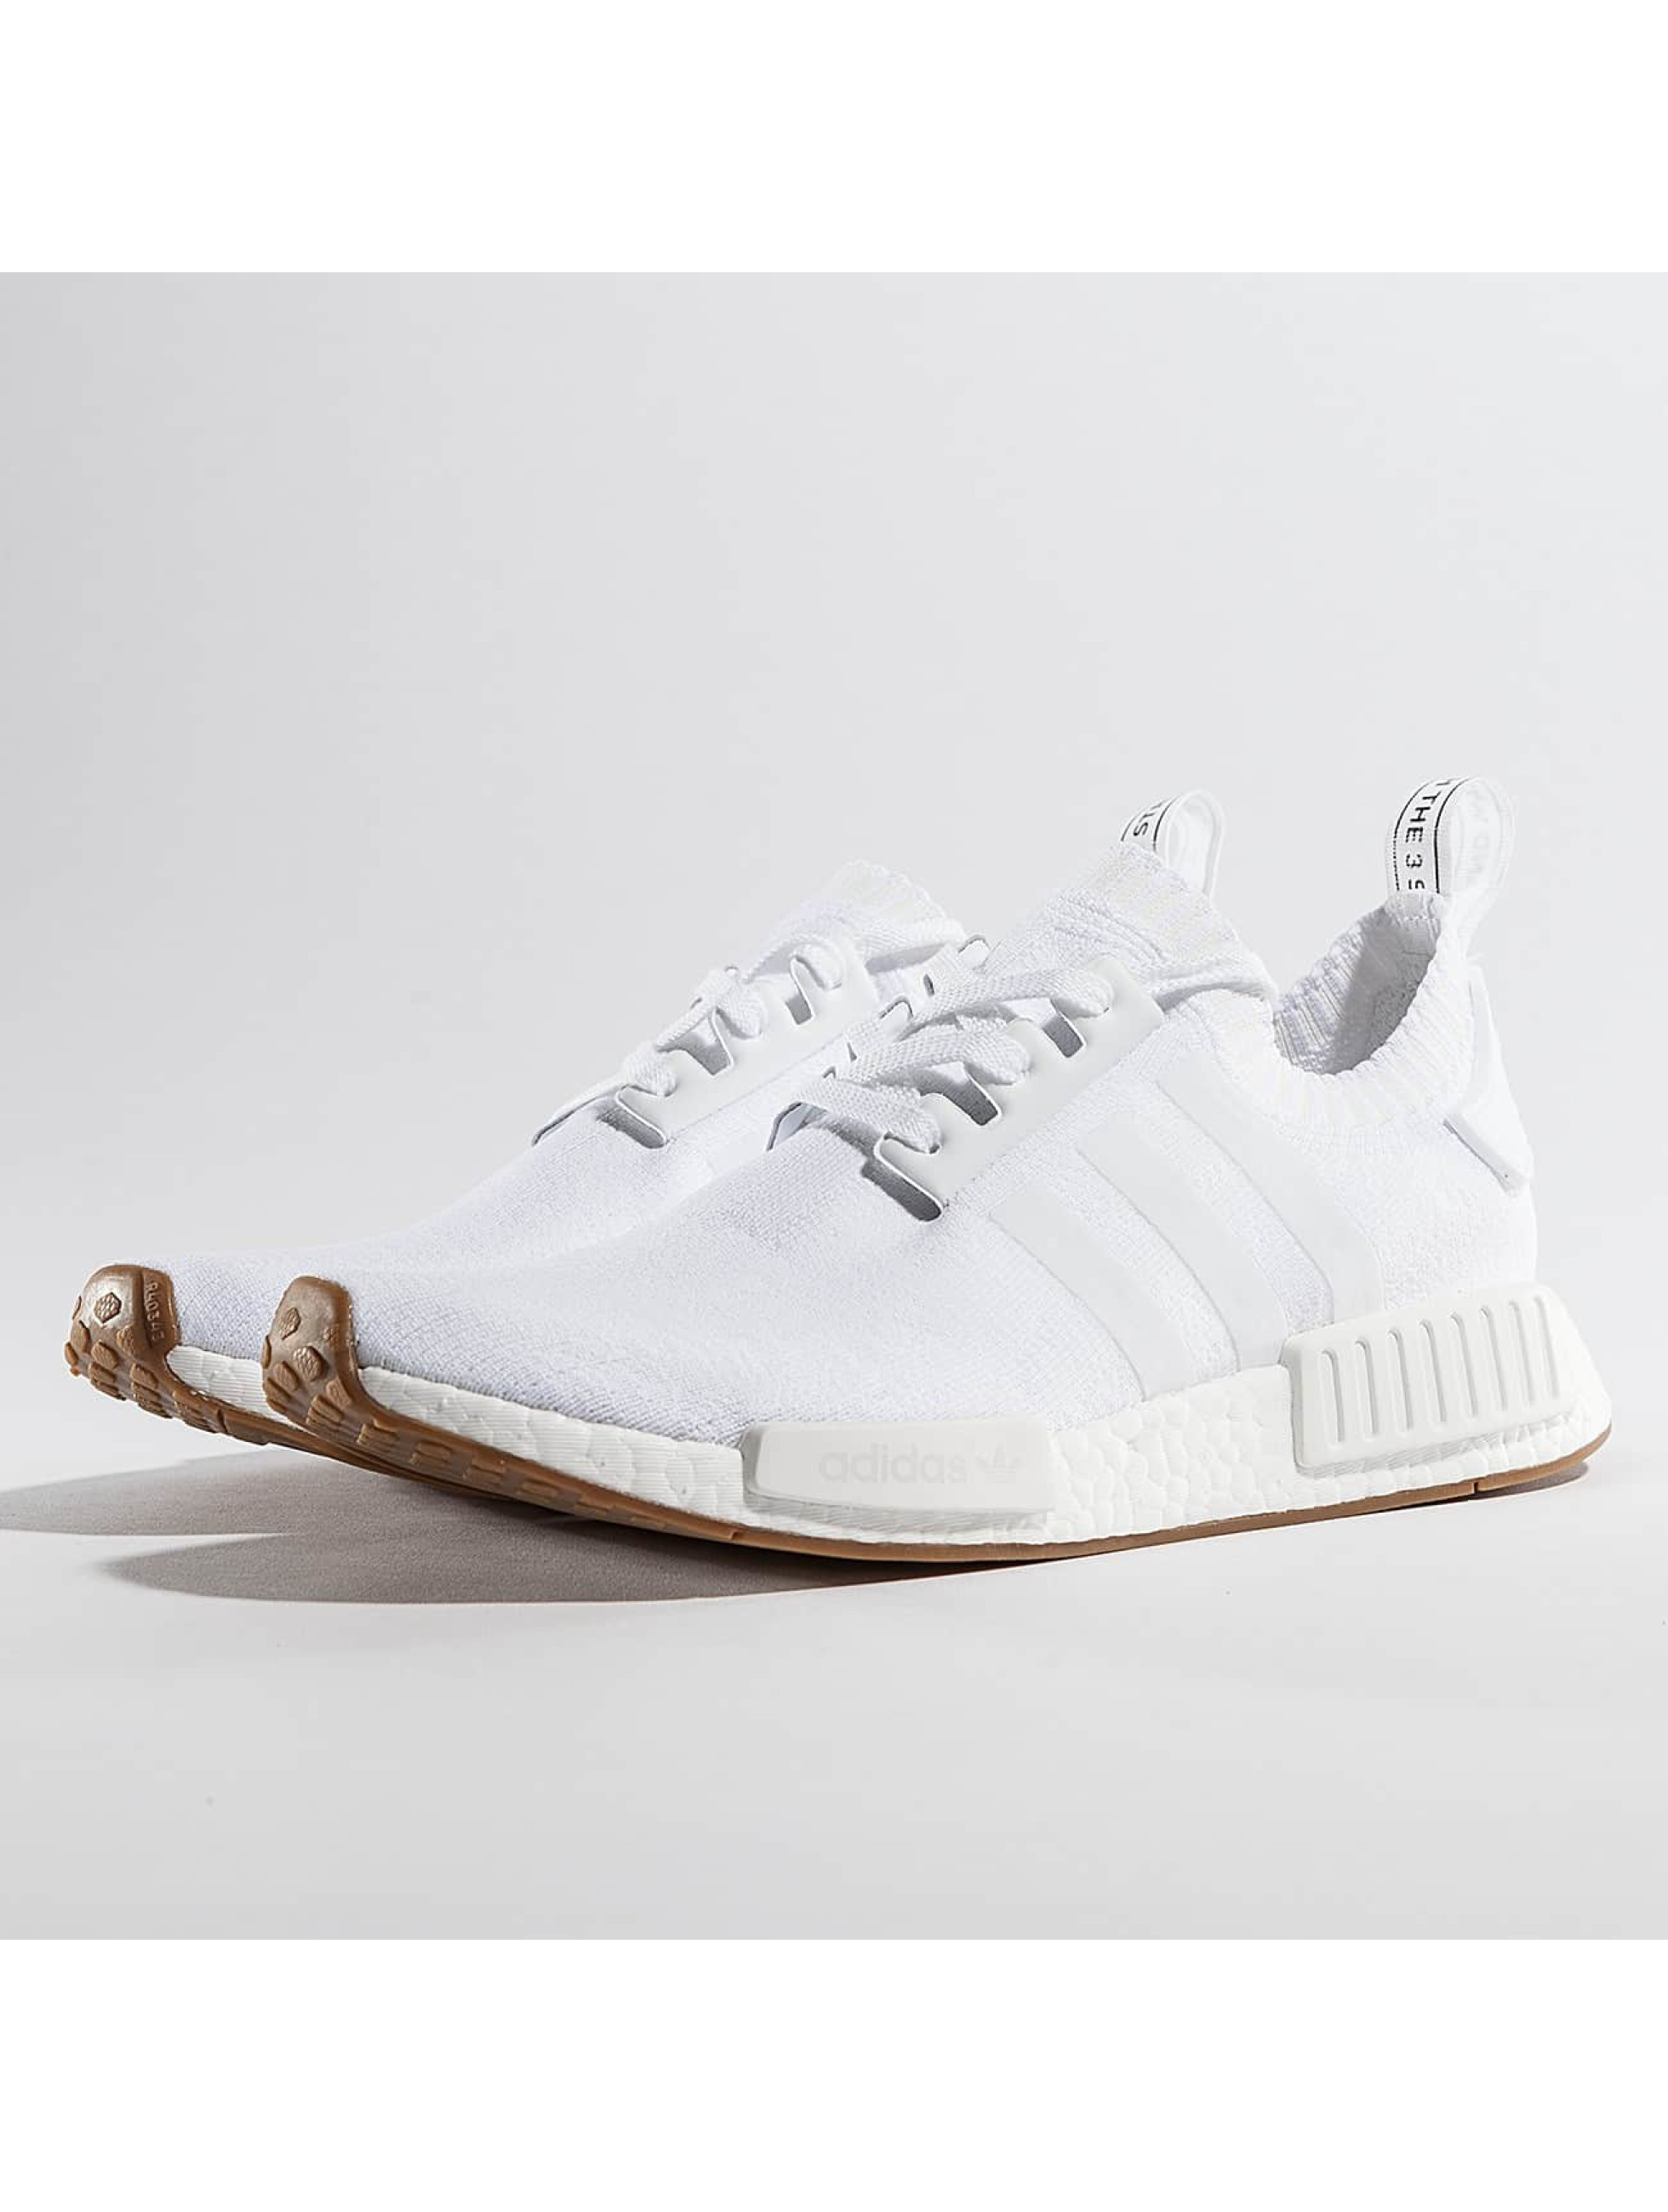 adidas nmd r1 pk blanc baskets adidas acheter pas cher. Black Bedroom Furniture Sets. Home Design Ideas